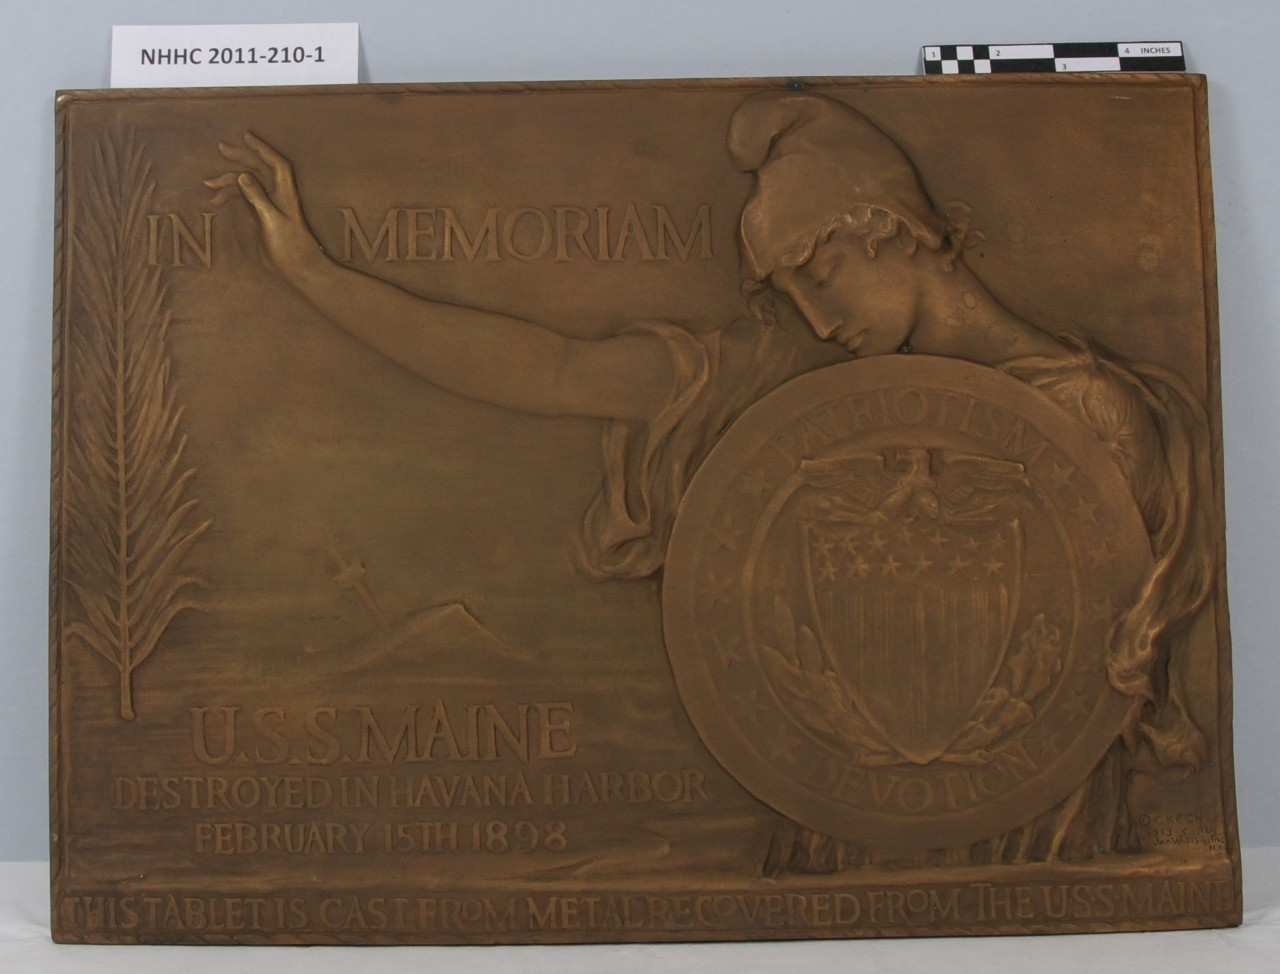 Memorial plaque made from metal recovered from the USS Maine